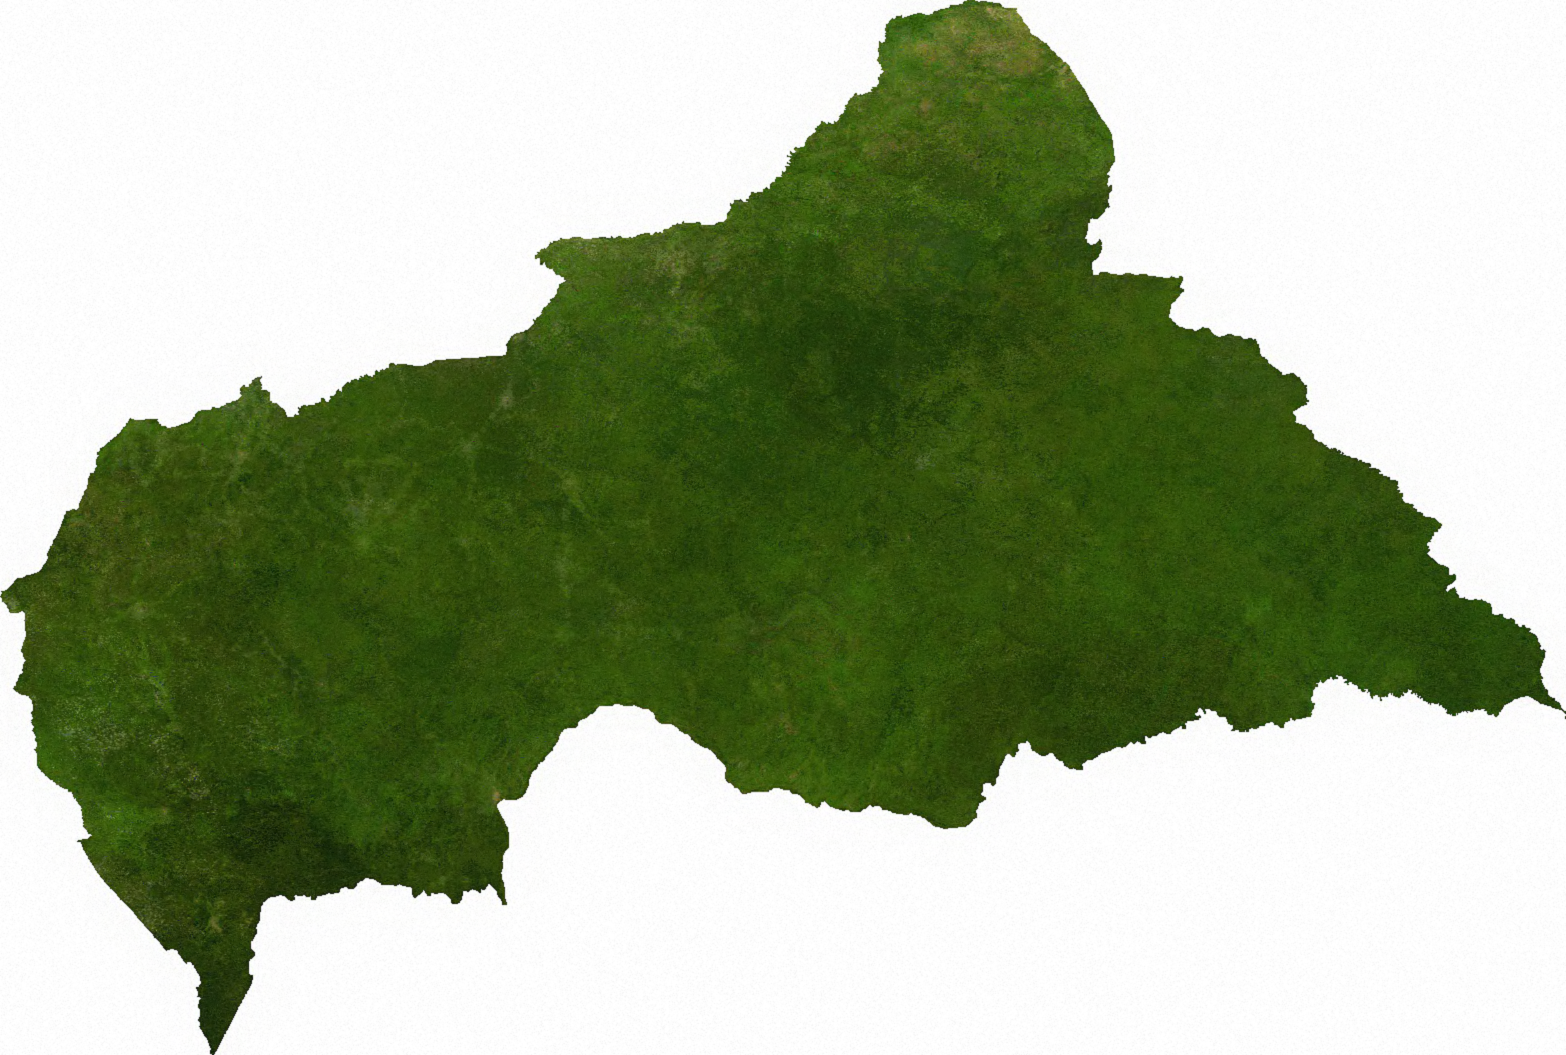 File:Satellite map of the Central African Republic.png.